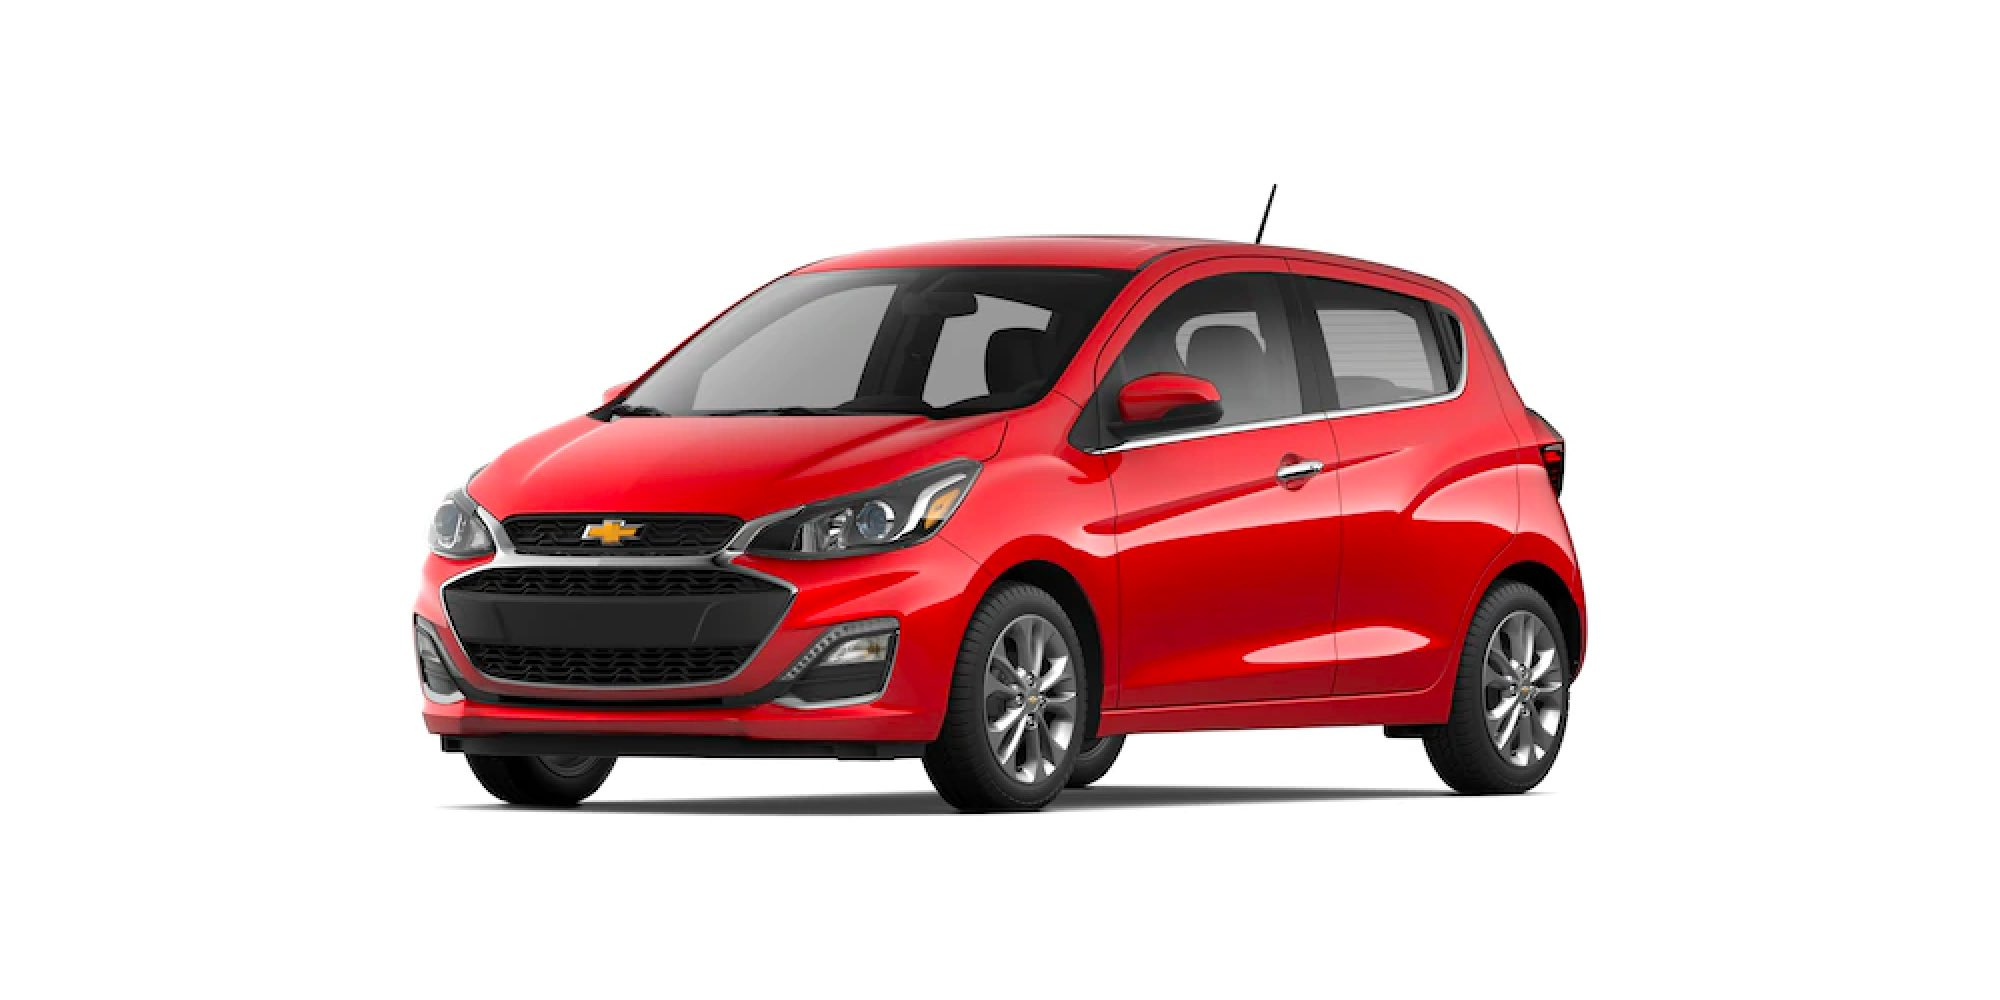 2021 Chevy Spark in Red Hot